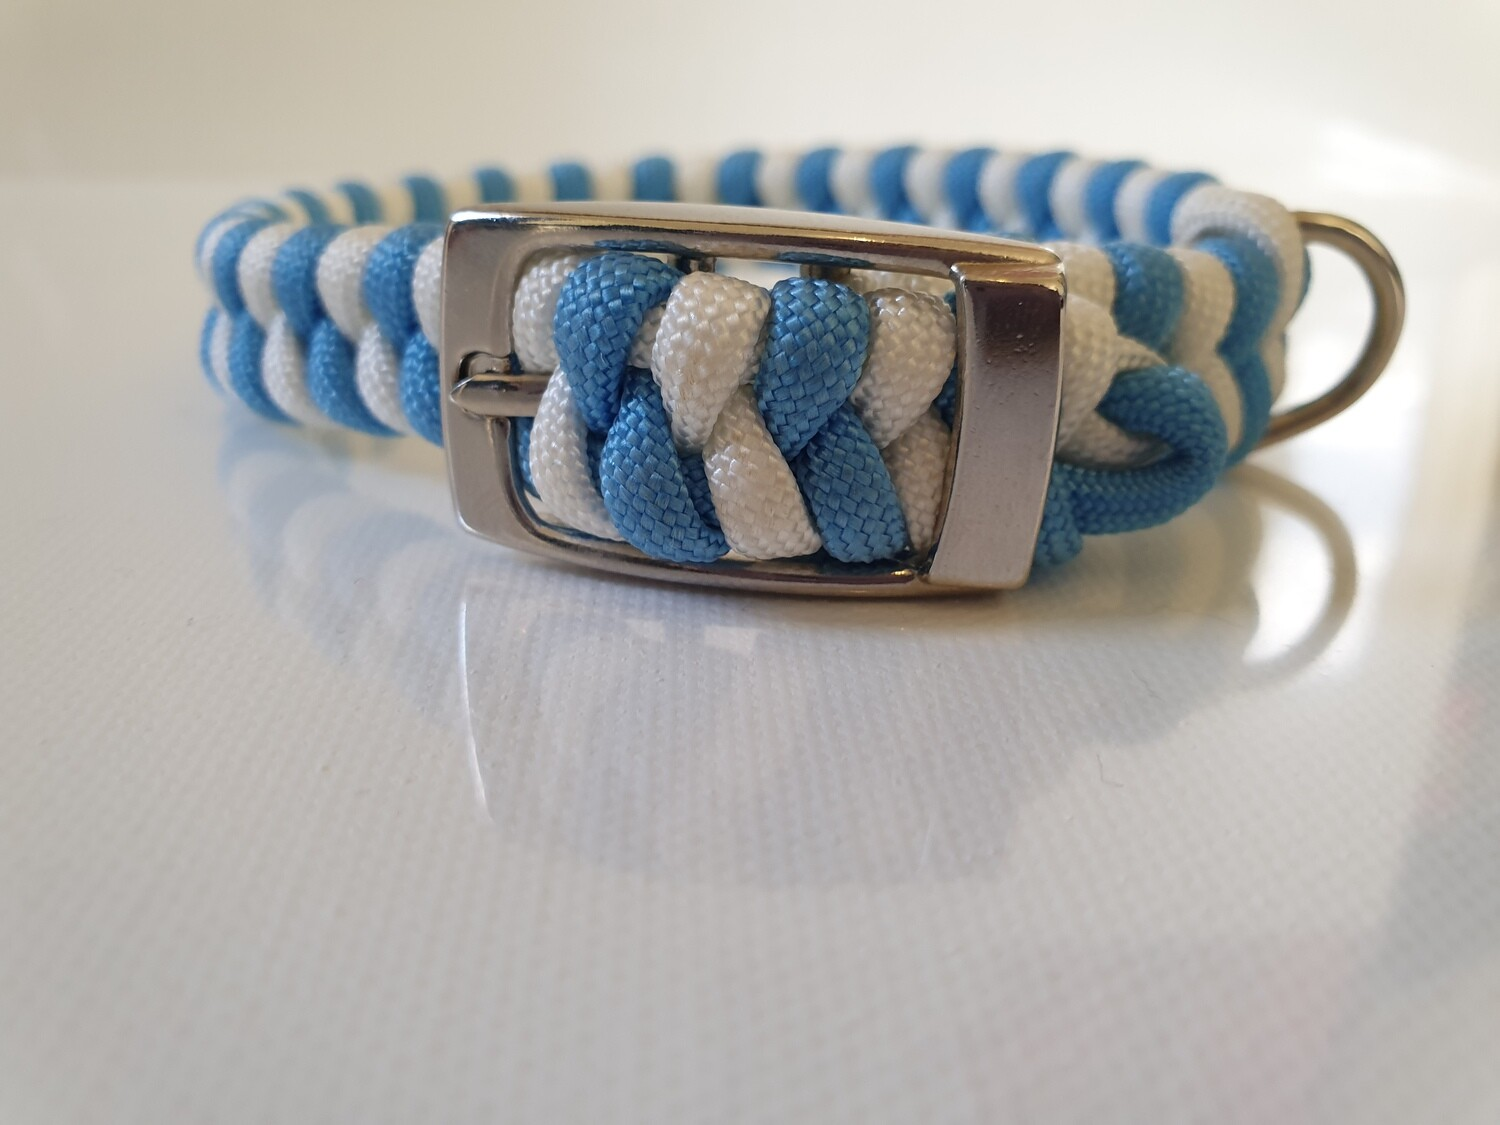 Flat Braid Extra Small Light Blue/White Dog Collar